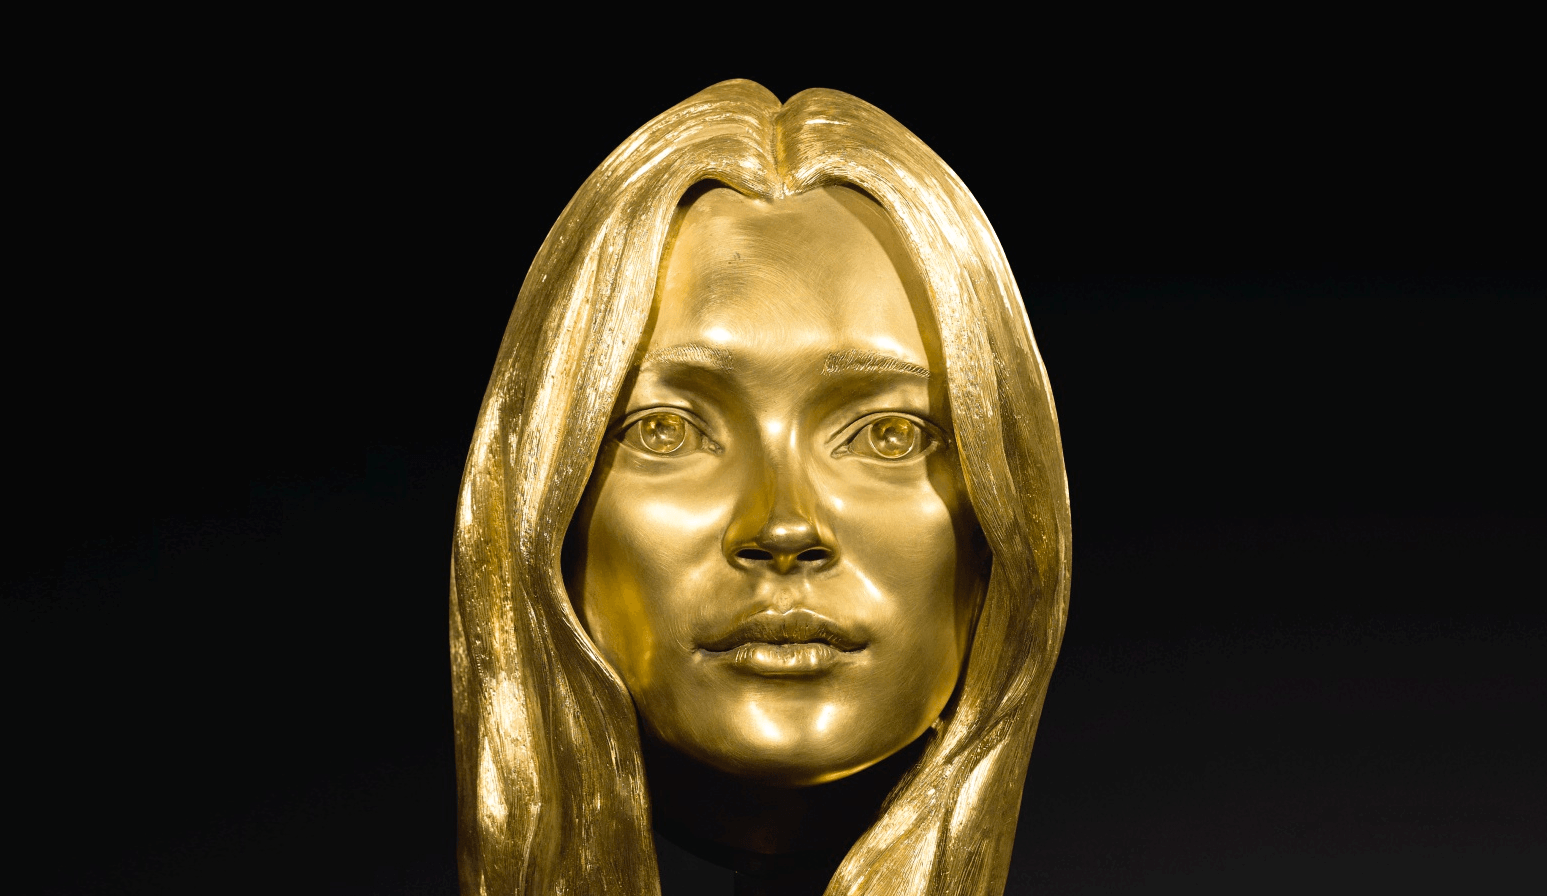 Kate Moss' golden head